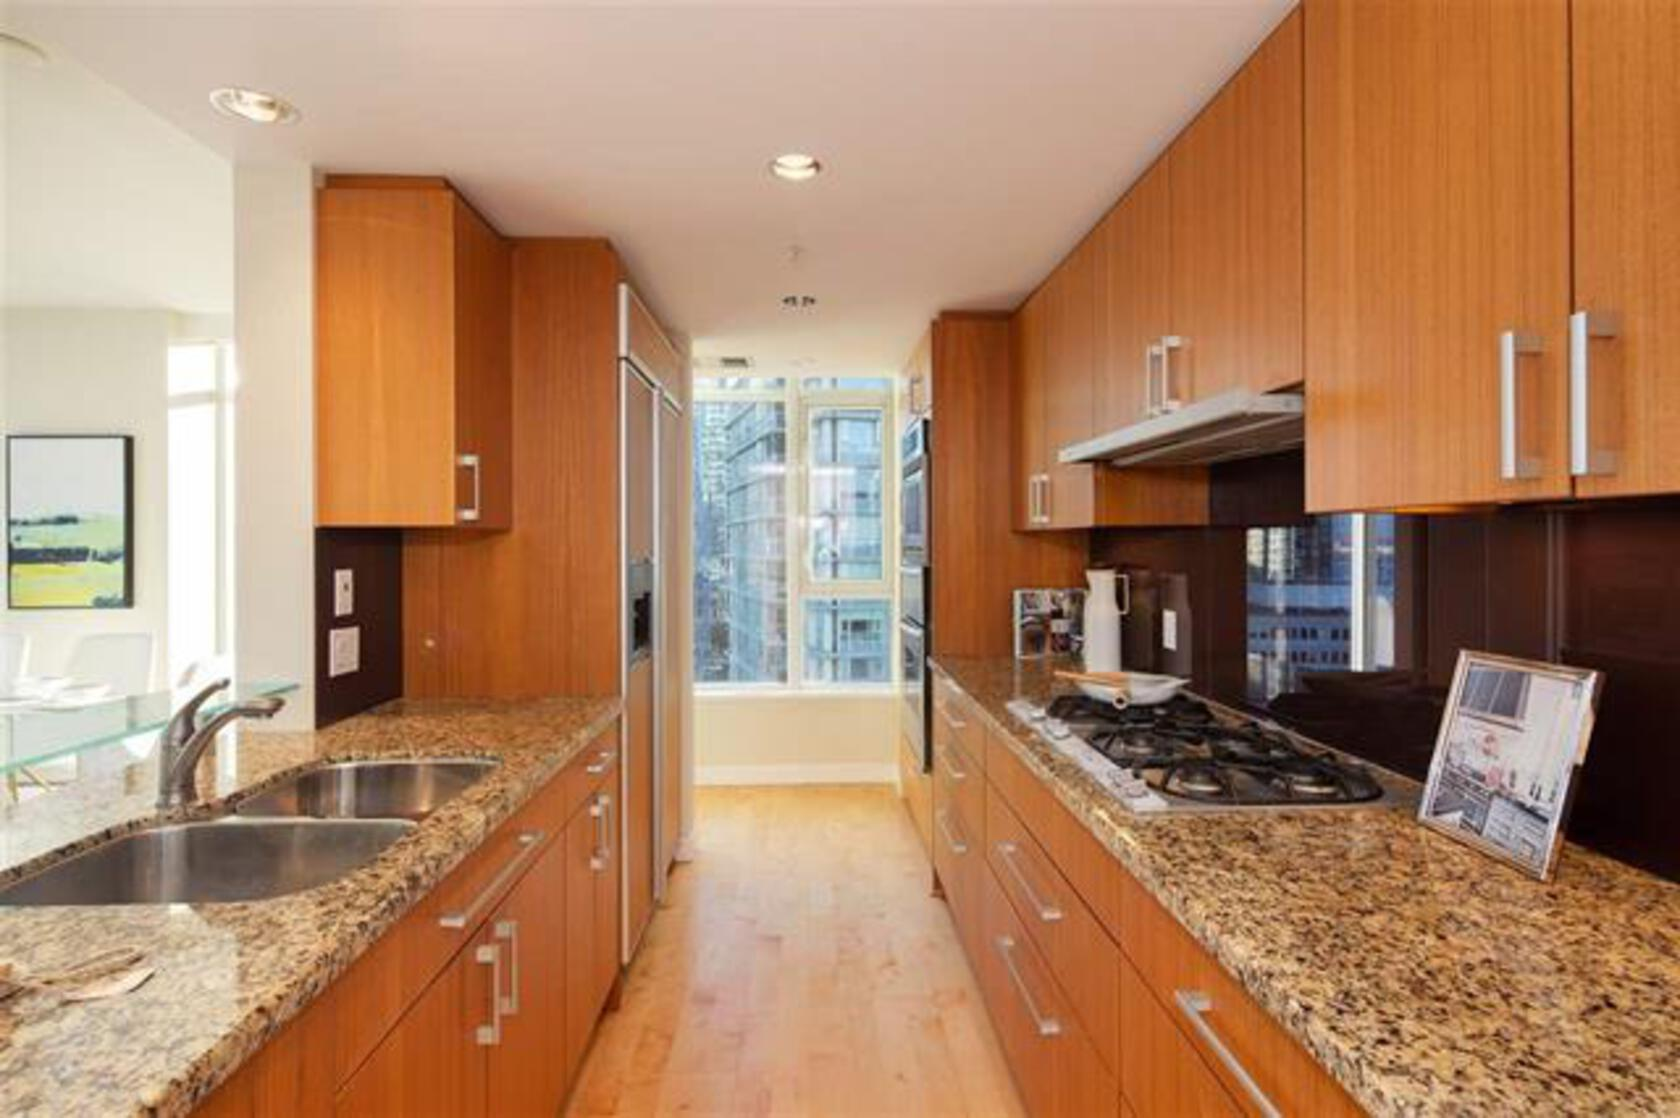 554e8554-dd8d-4935-aac8-047f962ac33e at 2803 - 1281 W Cordova, Coal Harbour, Vancouver West